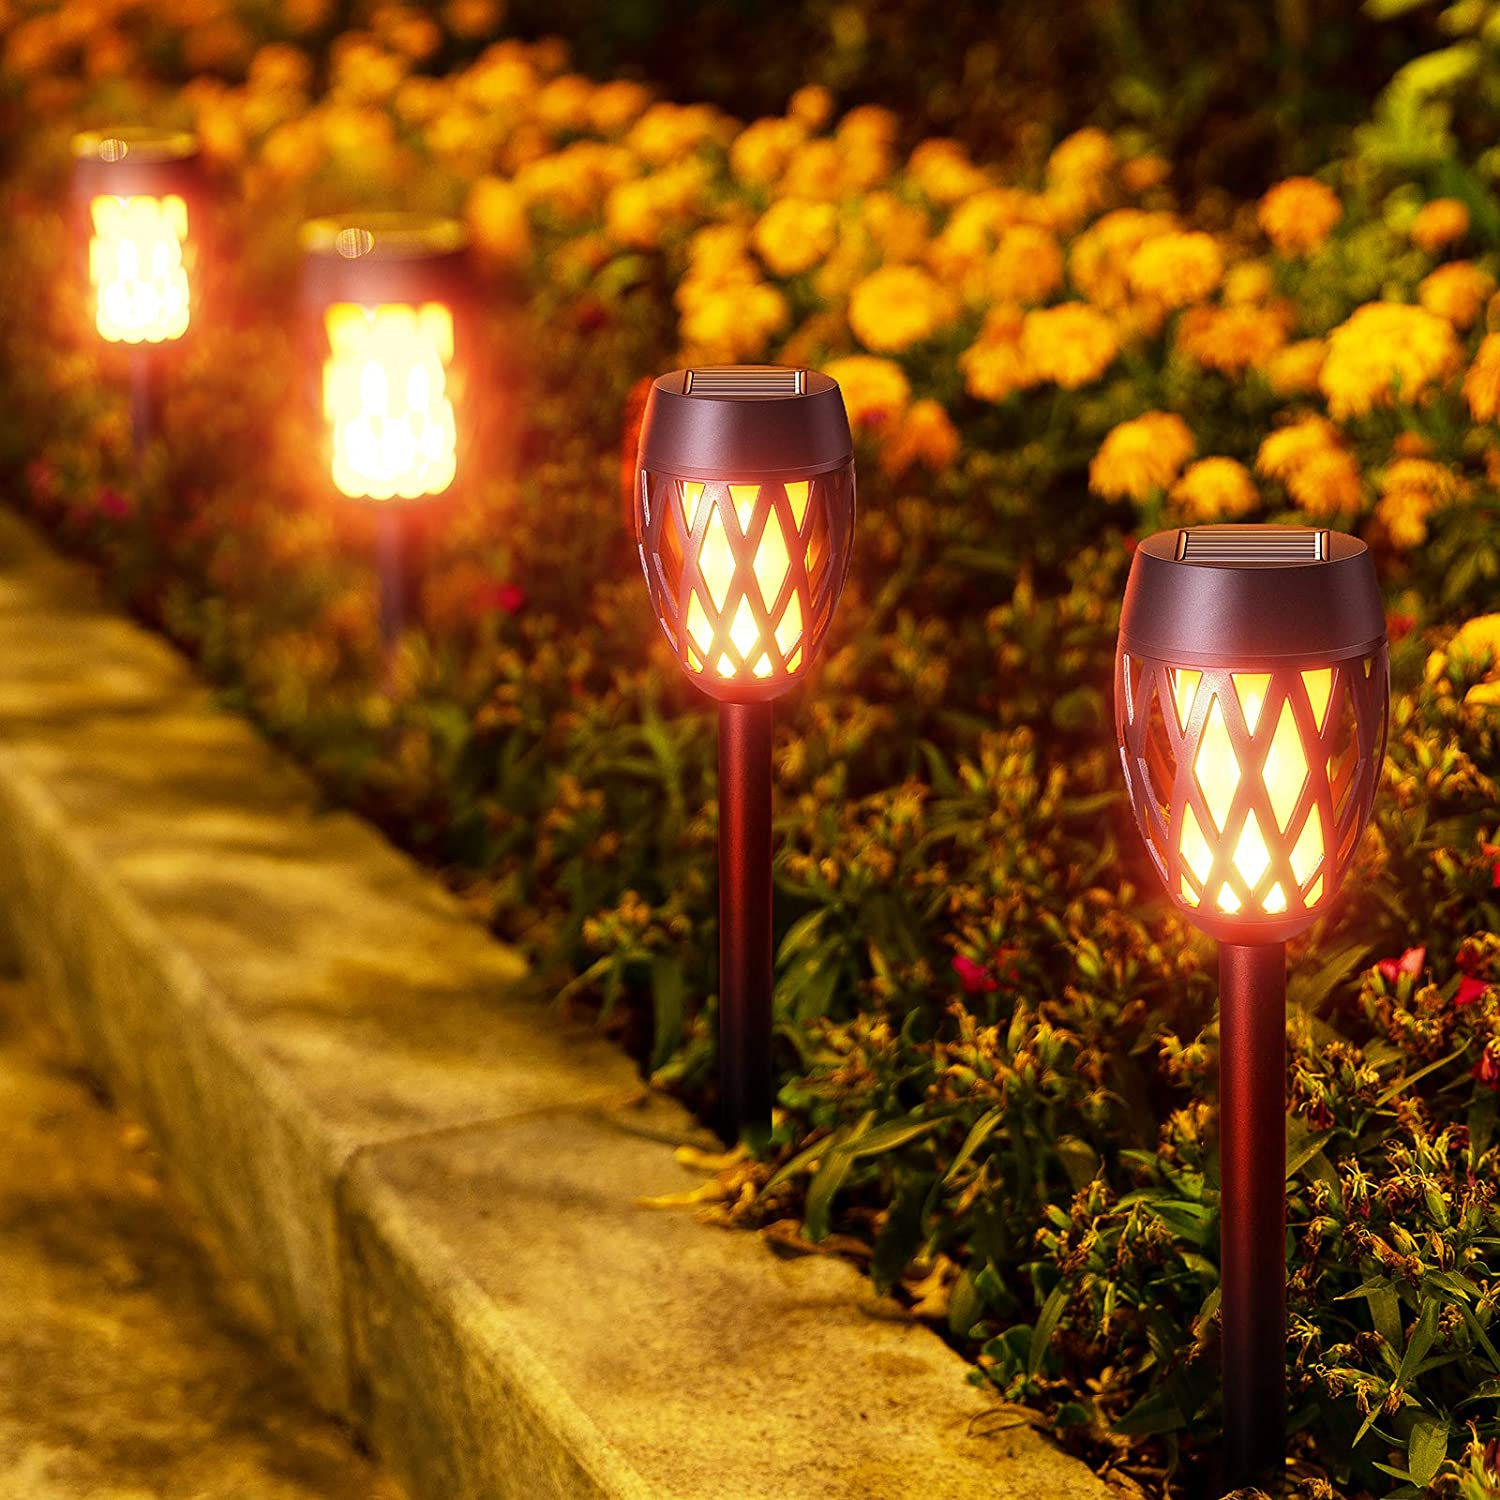 KOOPER Solar Lights Outdoor Decorative Patio Waterproof Landscape Tiki Torches Decoration for Yard 4 Pack Solar Torch Light with Flickering Flame Garden